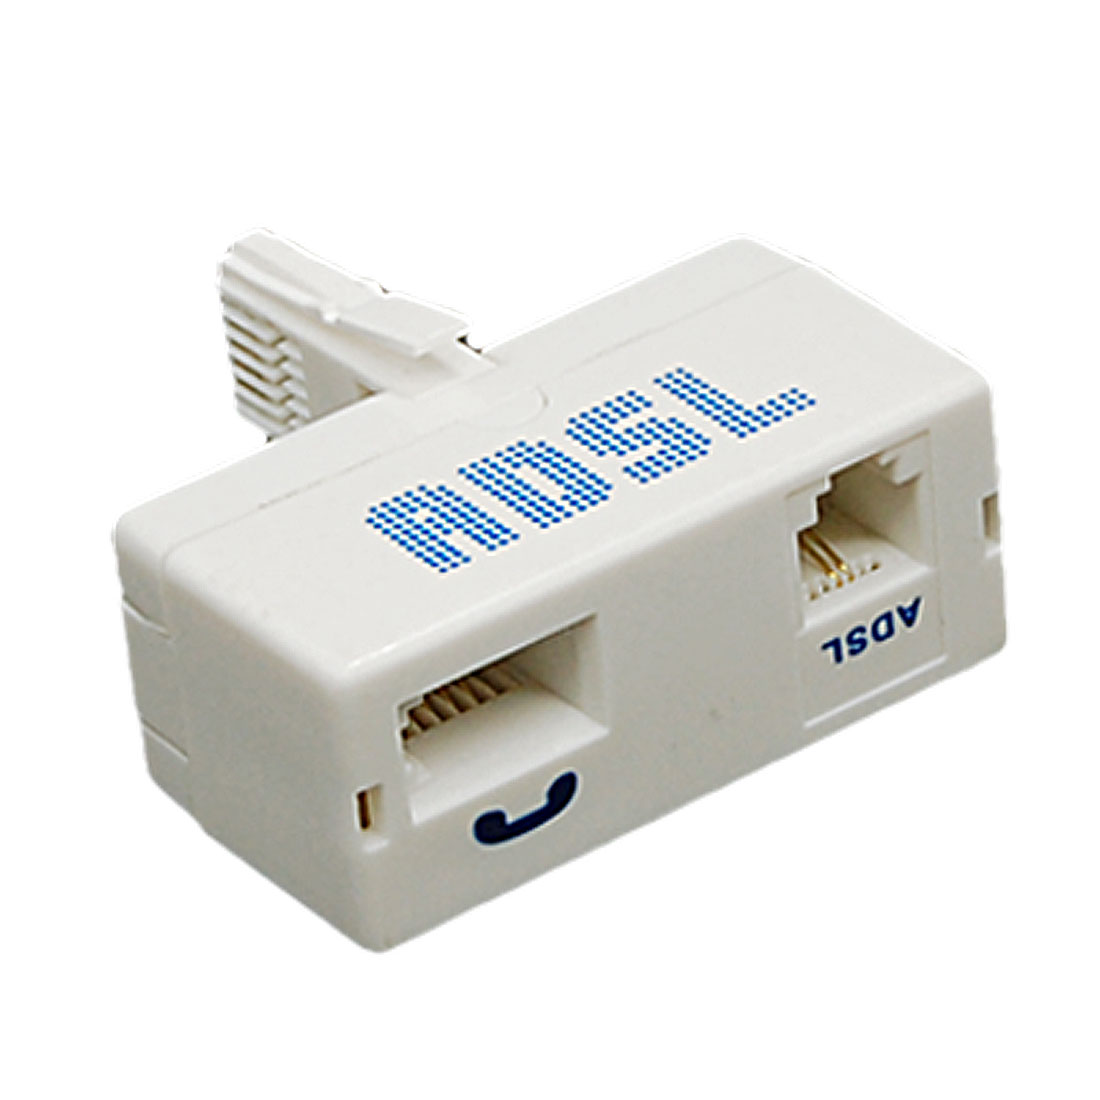 UK Telephone BT to RJ11 BT Socket Adapter Convertor